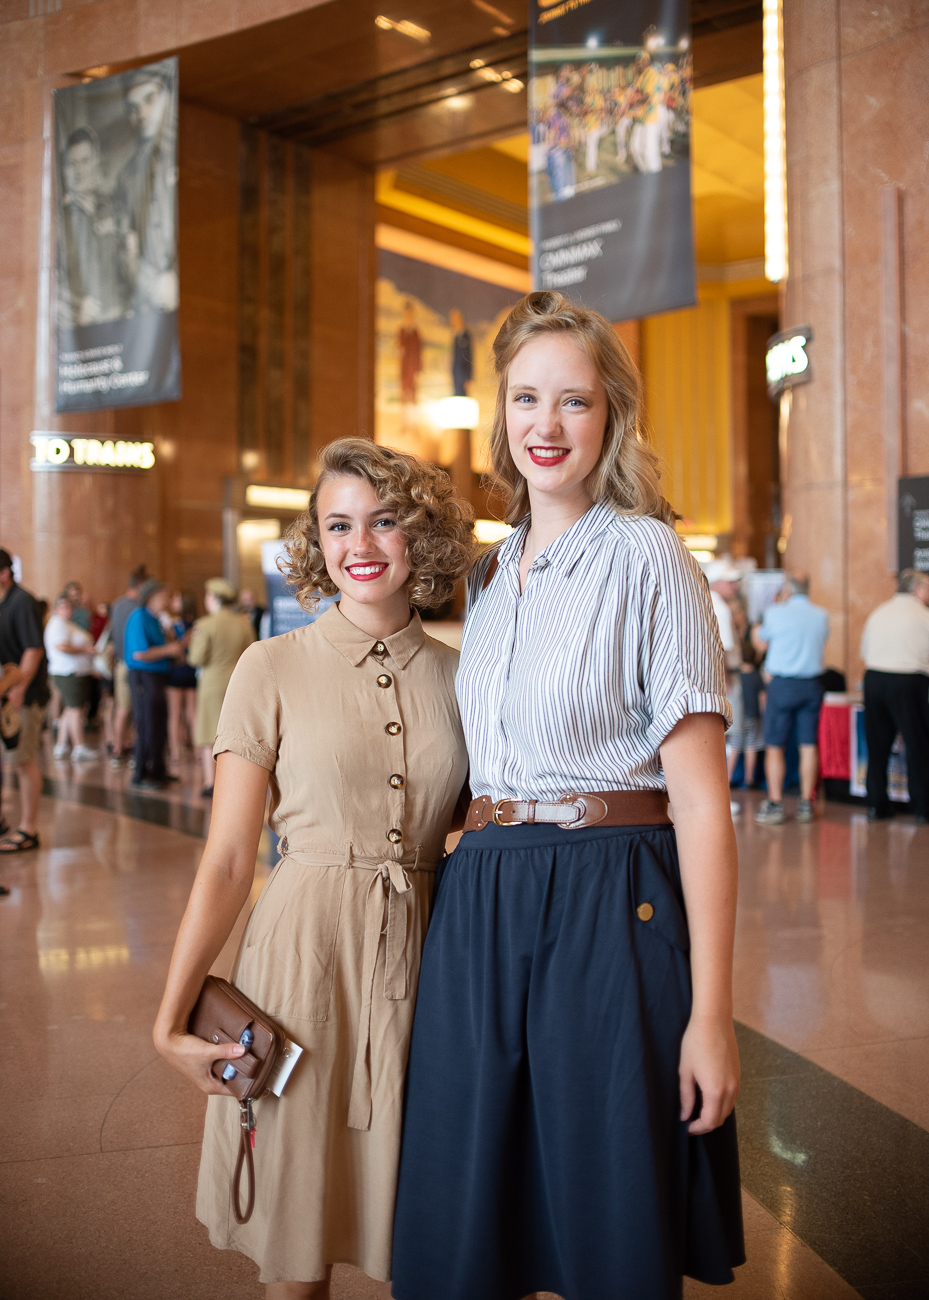 The Cincinnati Museum Center hosted its 1940s Day on Saturday, August 10. The event, which was held at Lunken Airport for the last several years, returned to the freshly restored Union Terminal for 2019. Attendees enjoyed lighthearted live jazz, big band music, vintage cars, a WWII-era plane fly-over, and period fashion to celebrate the pivotal decade that reshaped the world. The event also featured a speaker who survived the Holocaust as well as a lecture about Japanese-American internment during WWII. / Image: Phil Armstrong, Cincinnati Refined // Published: 8.29.19